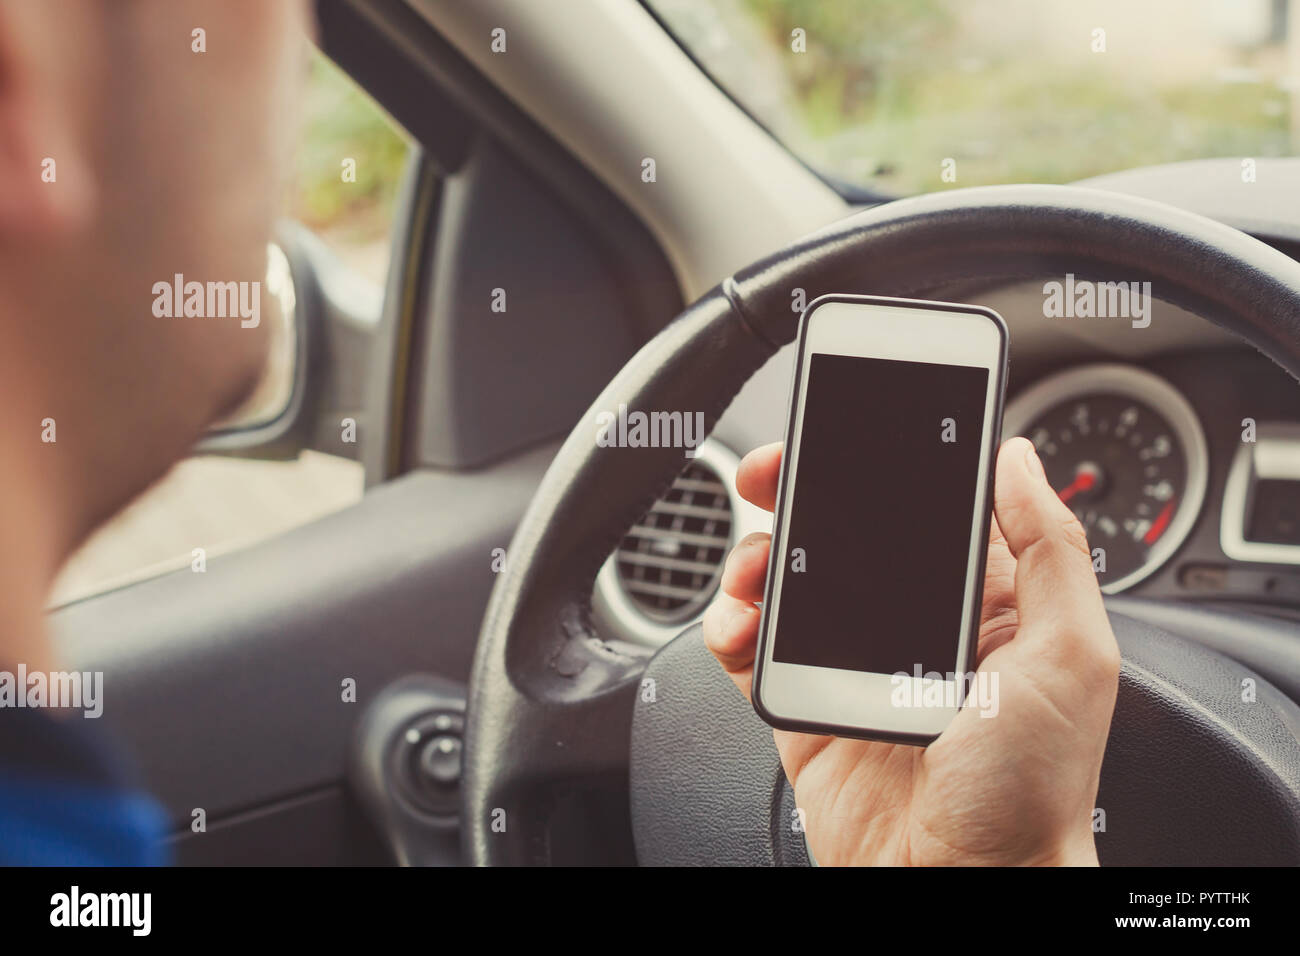 Man using smartphone in car, driver holding mobile phone with empty blank screen. - Stock Image